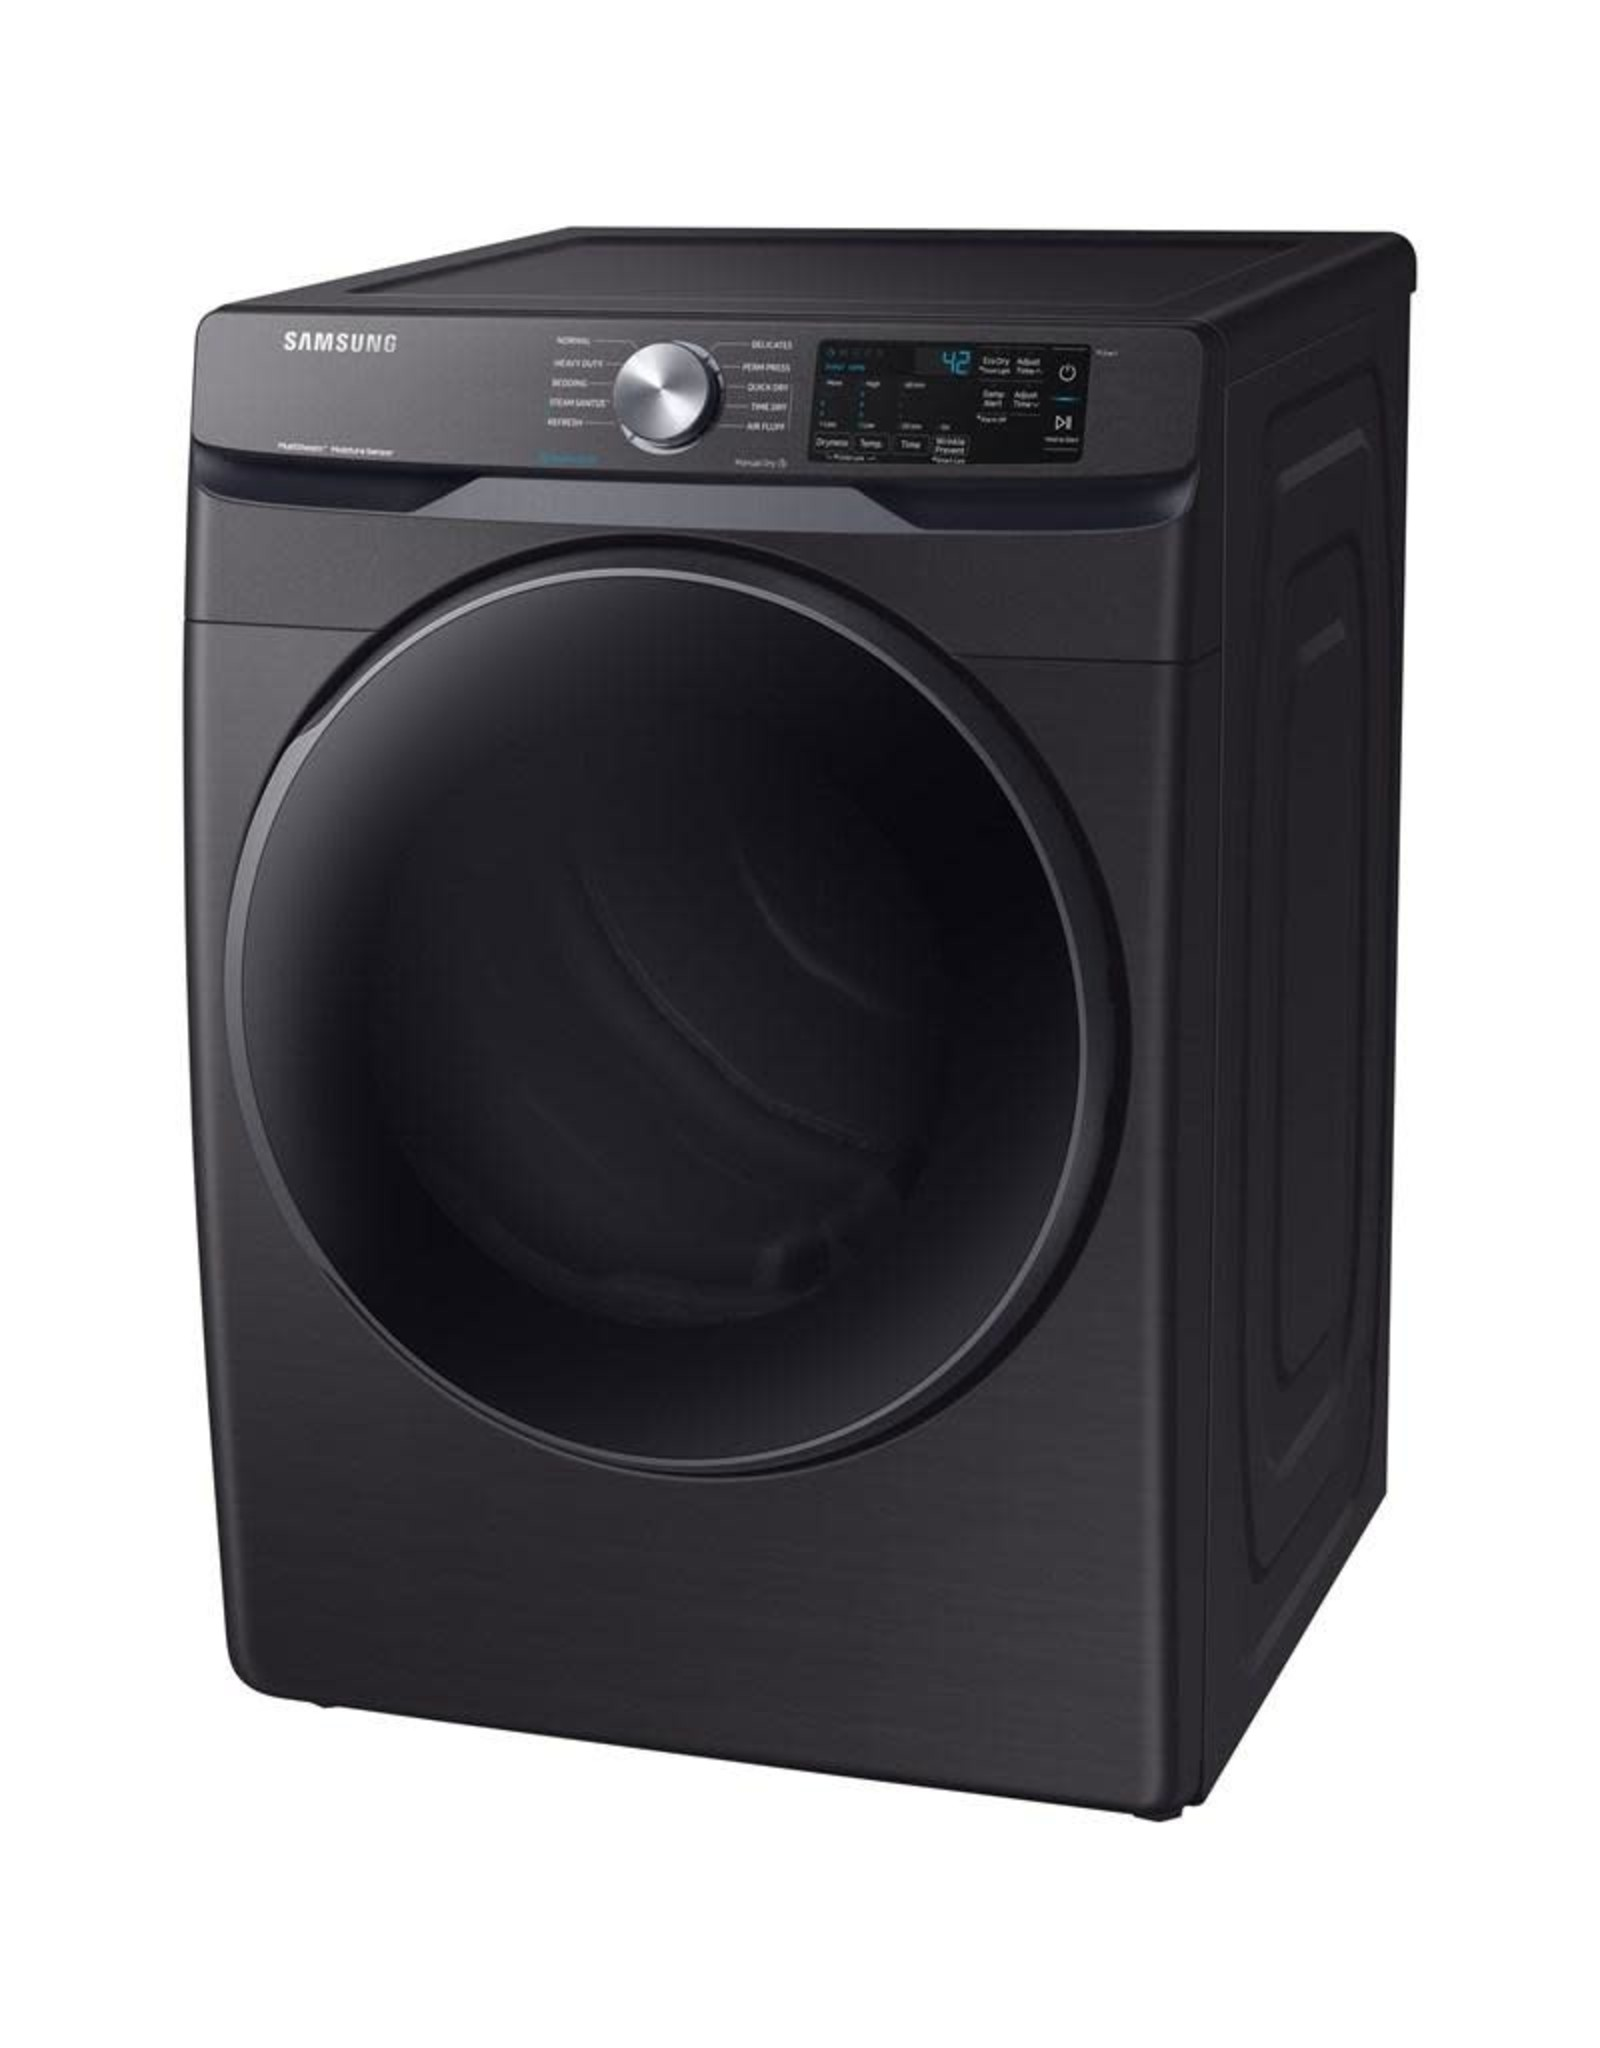 SAMSUNG DVE45R6100V  7.5 cu. ft. Electric Dryer with Steam Sanitize+ in Black Stainless Steel